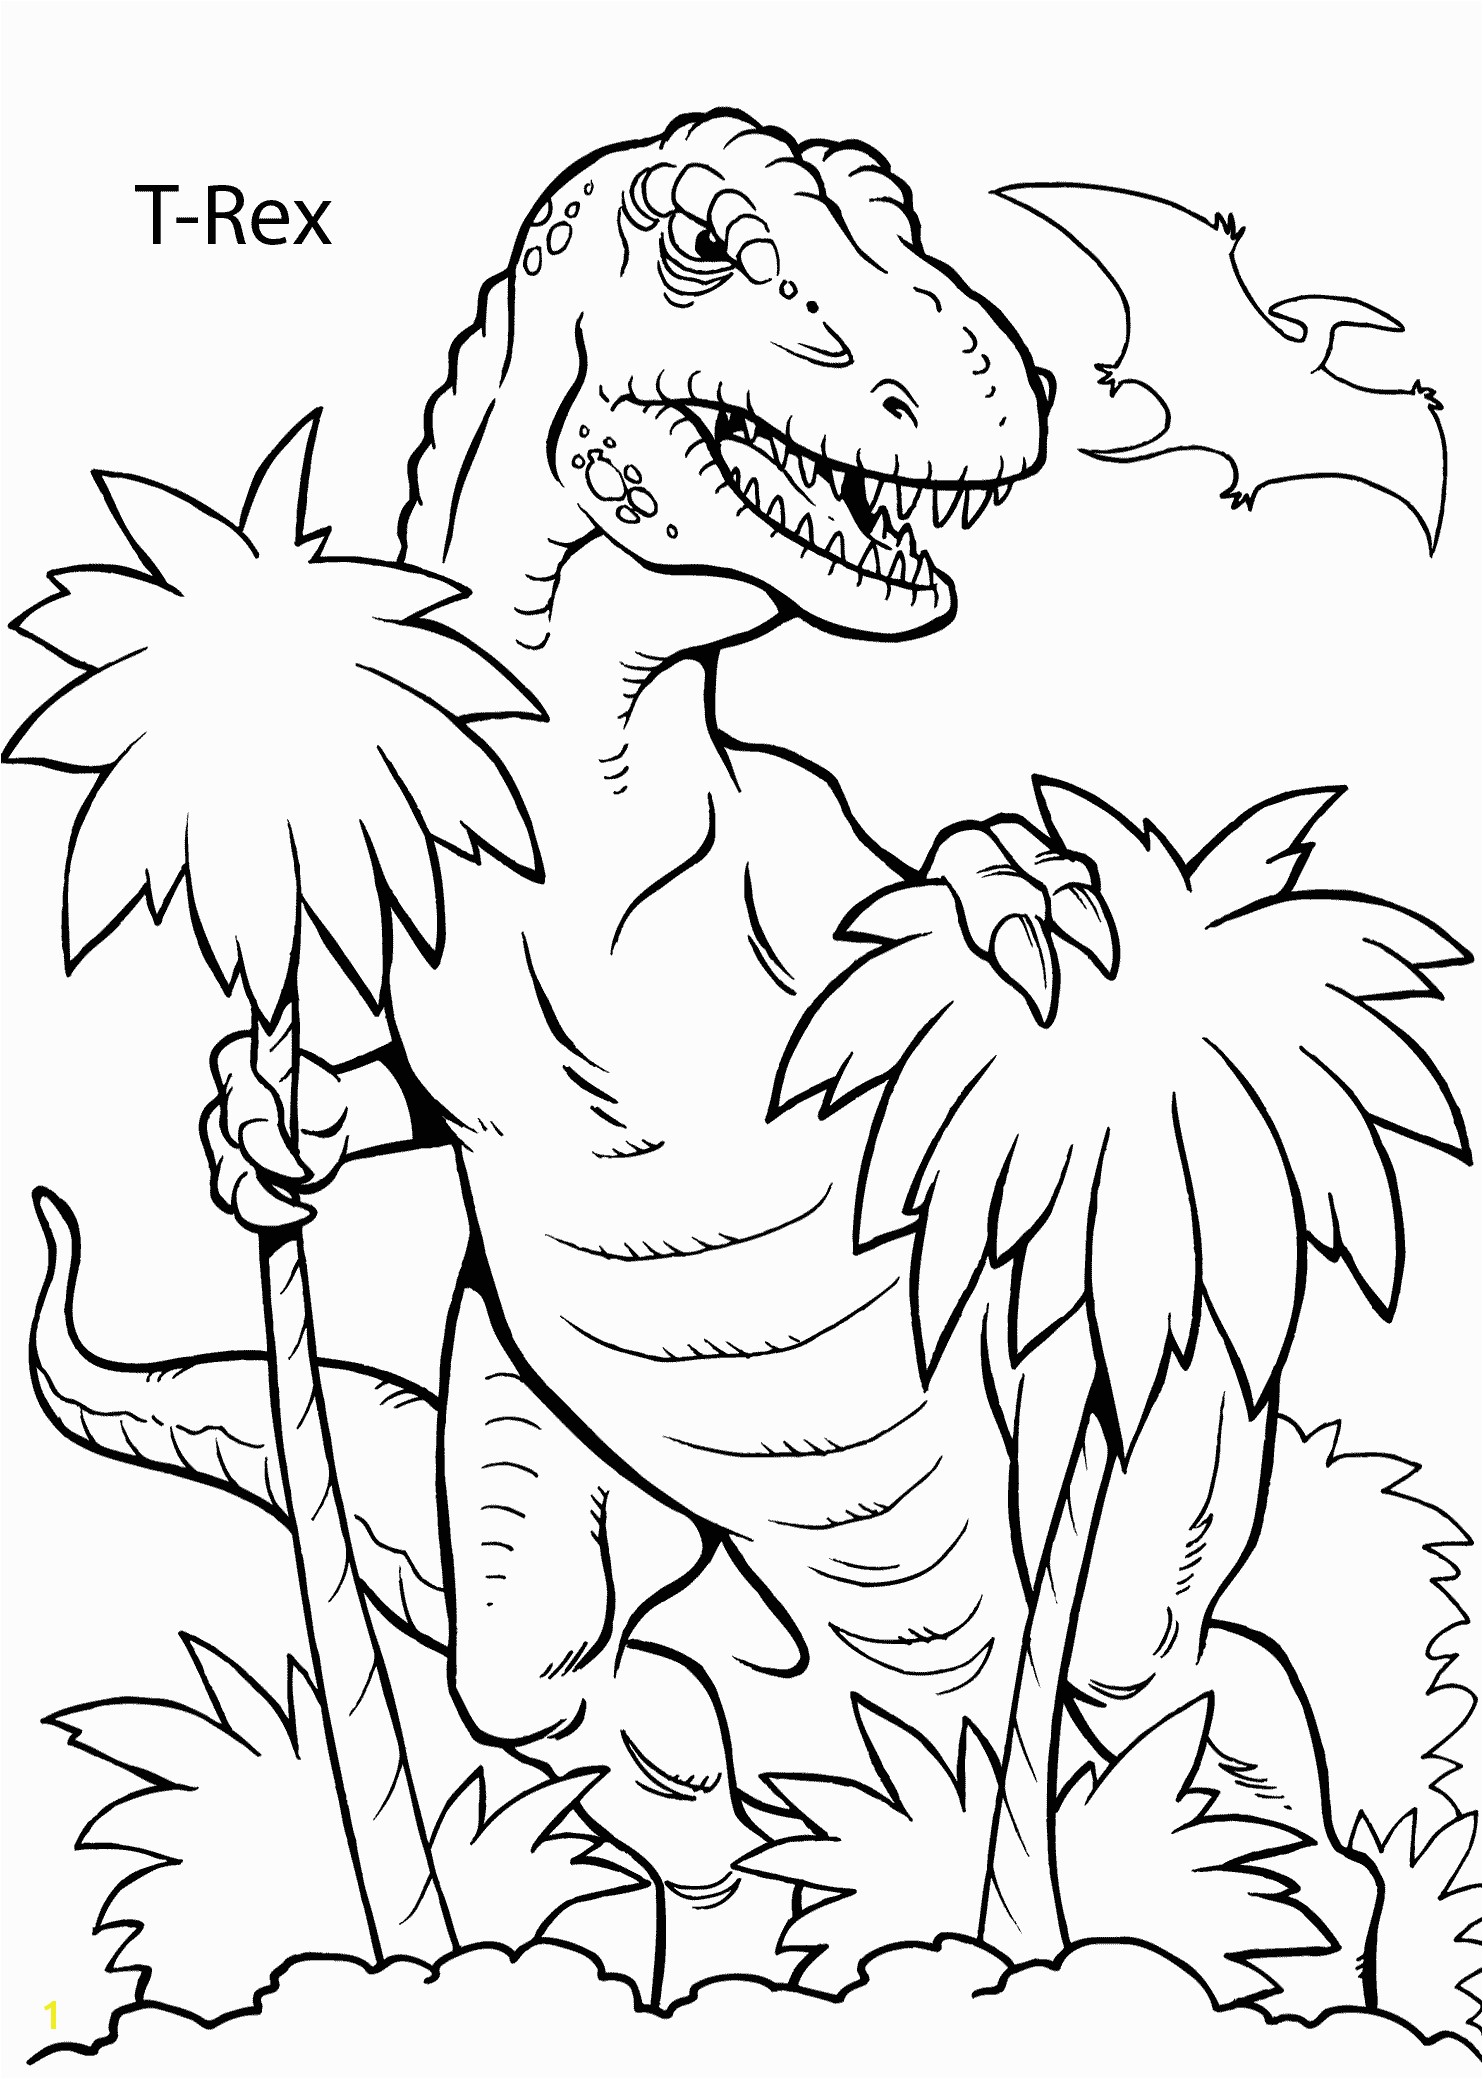 Coloring Pages Of Dinosaurs for Preschoolers T Rex Dinosaur Coloring Pages for Kids Printable Free